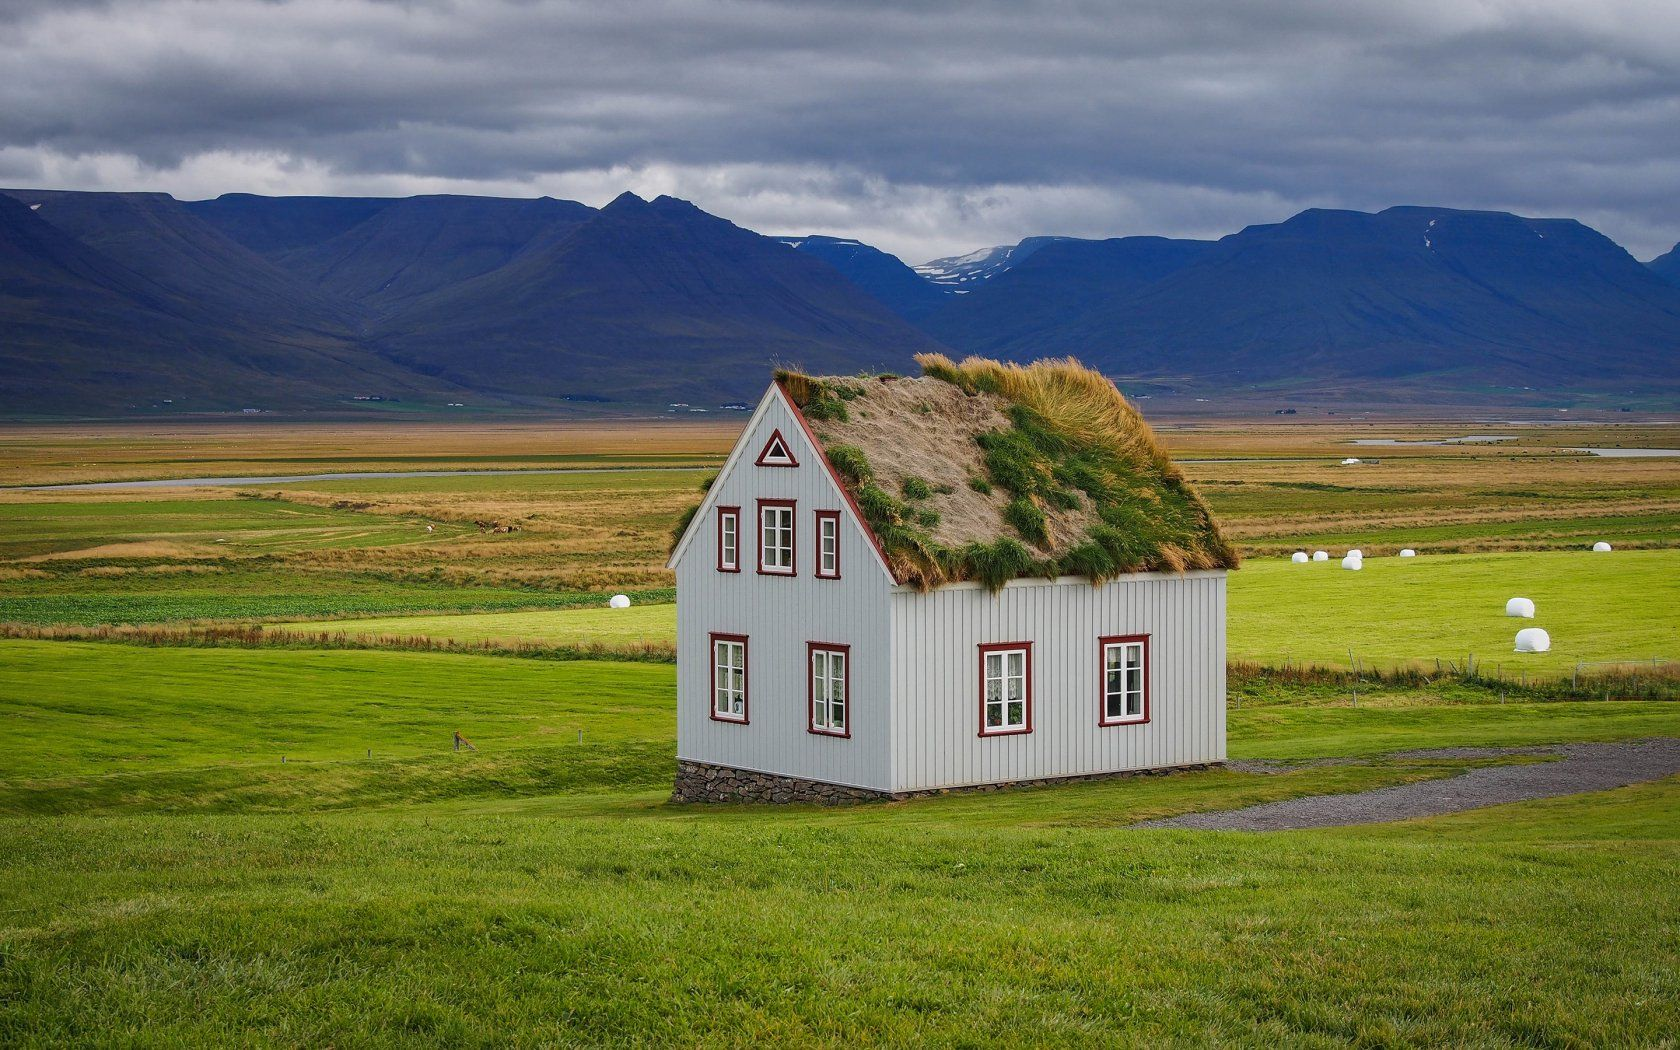 Sod-House Iceland Mountain Nature